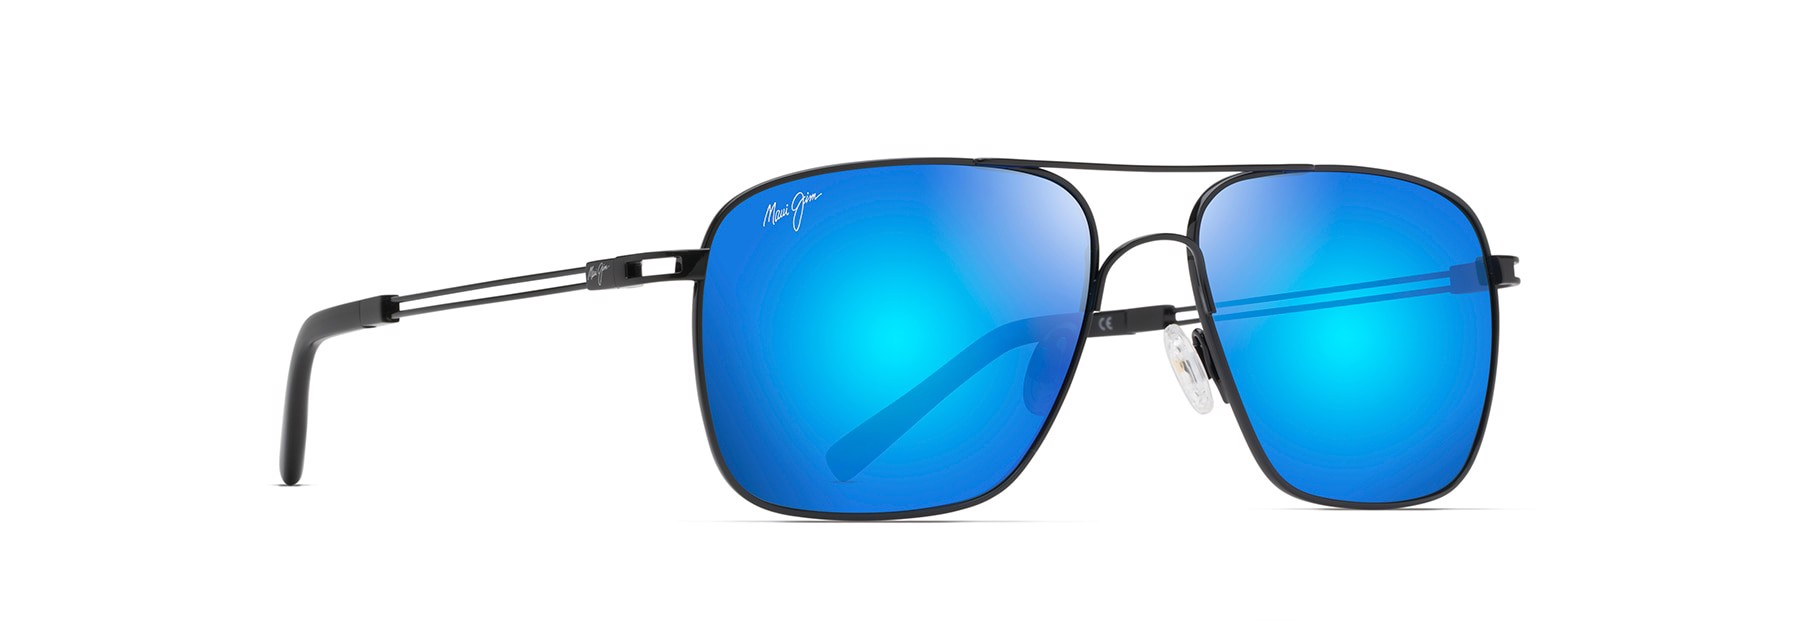 Maui Jim Haleiwa blue hawaii